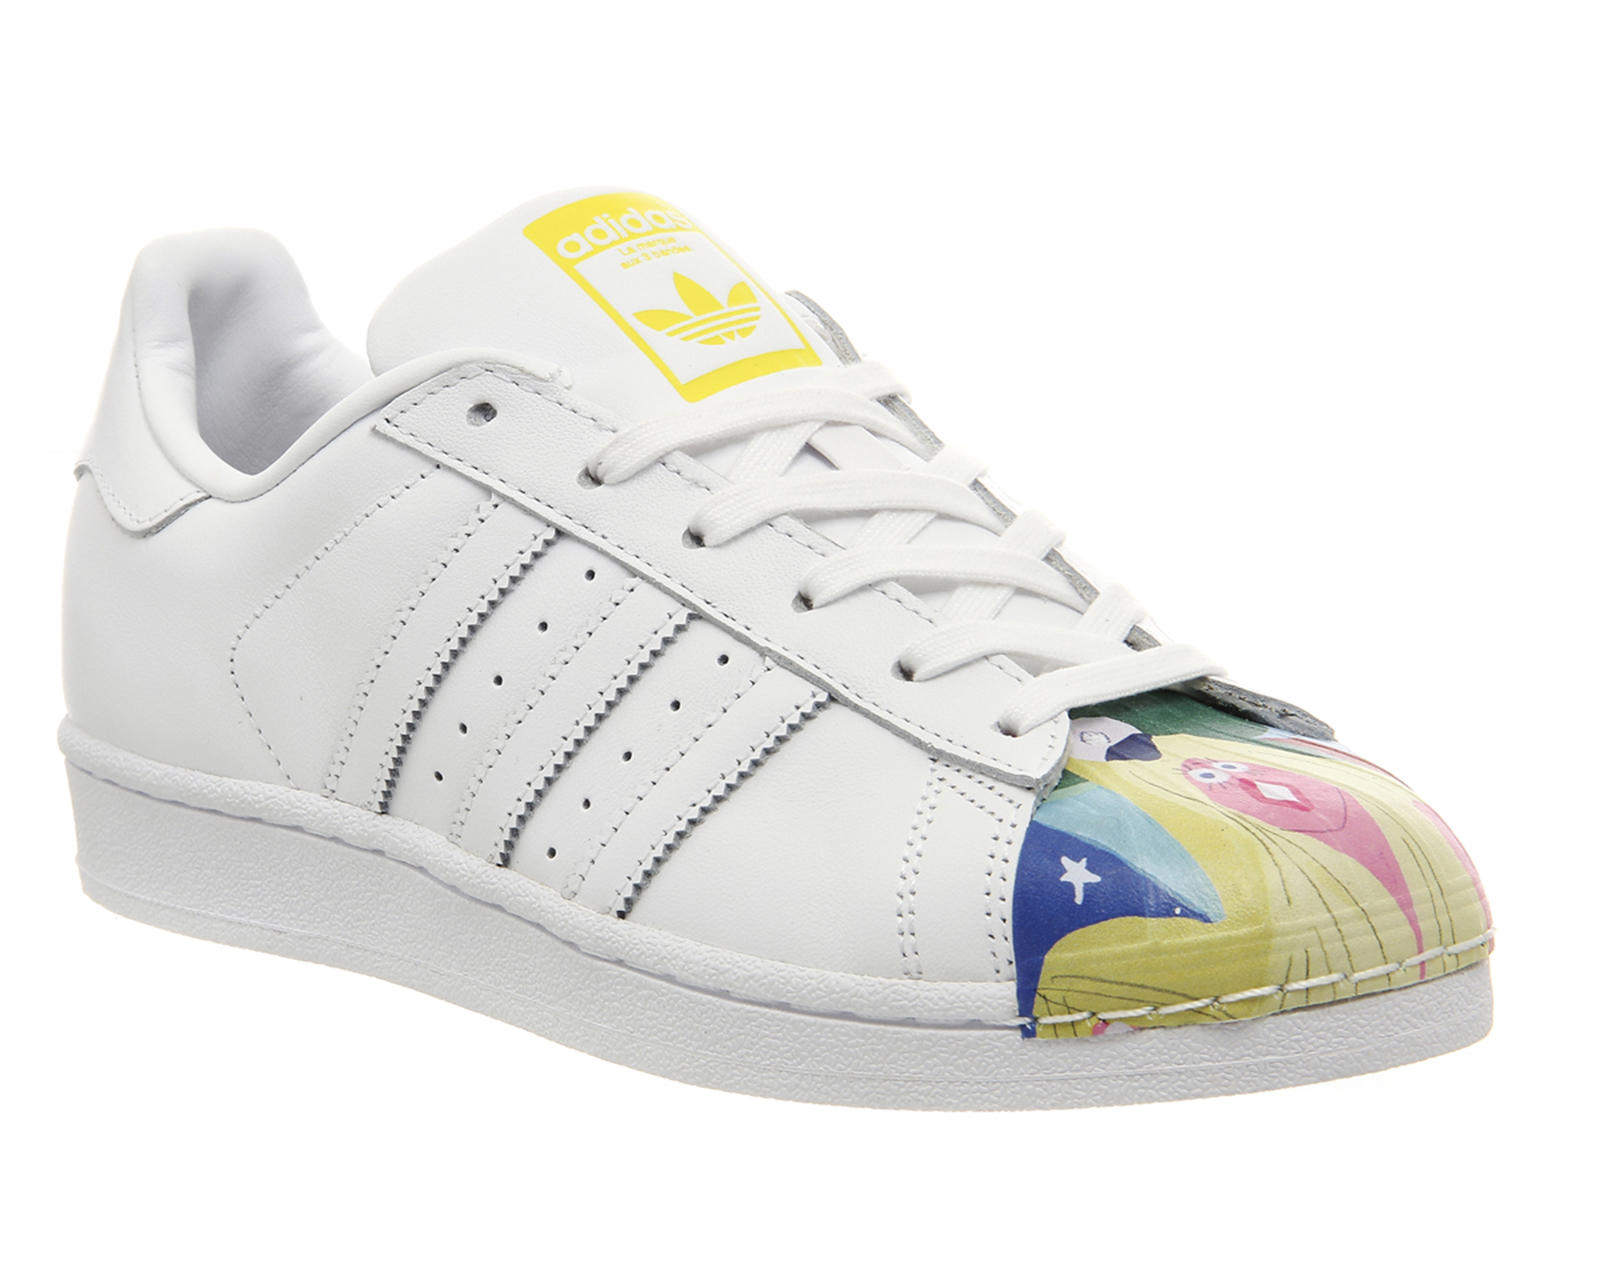 size 40 c2a30 c9aa2 Adidas Superstar 1 Todd James White Mono Multi Shell Toe - His trainers